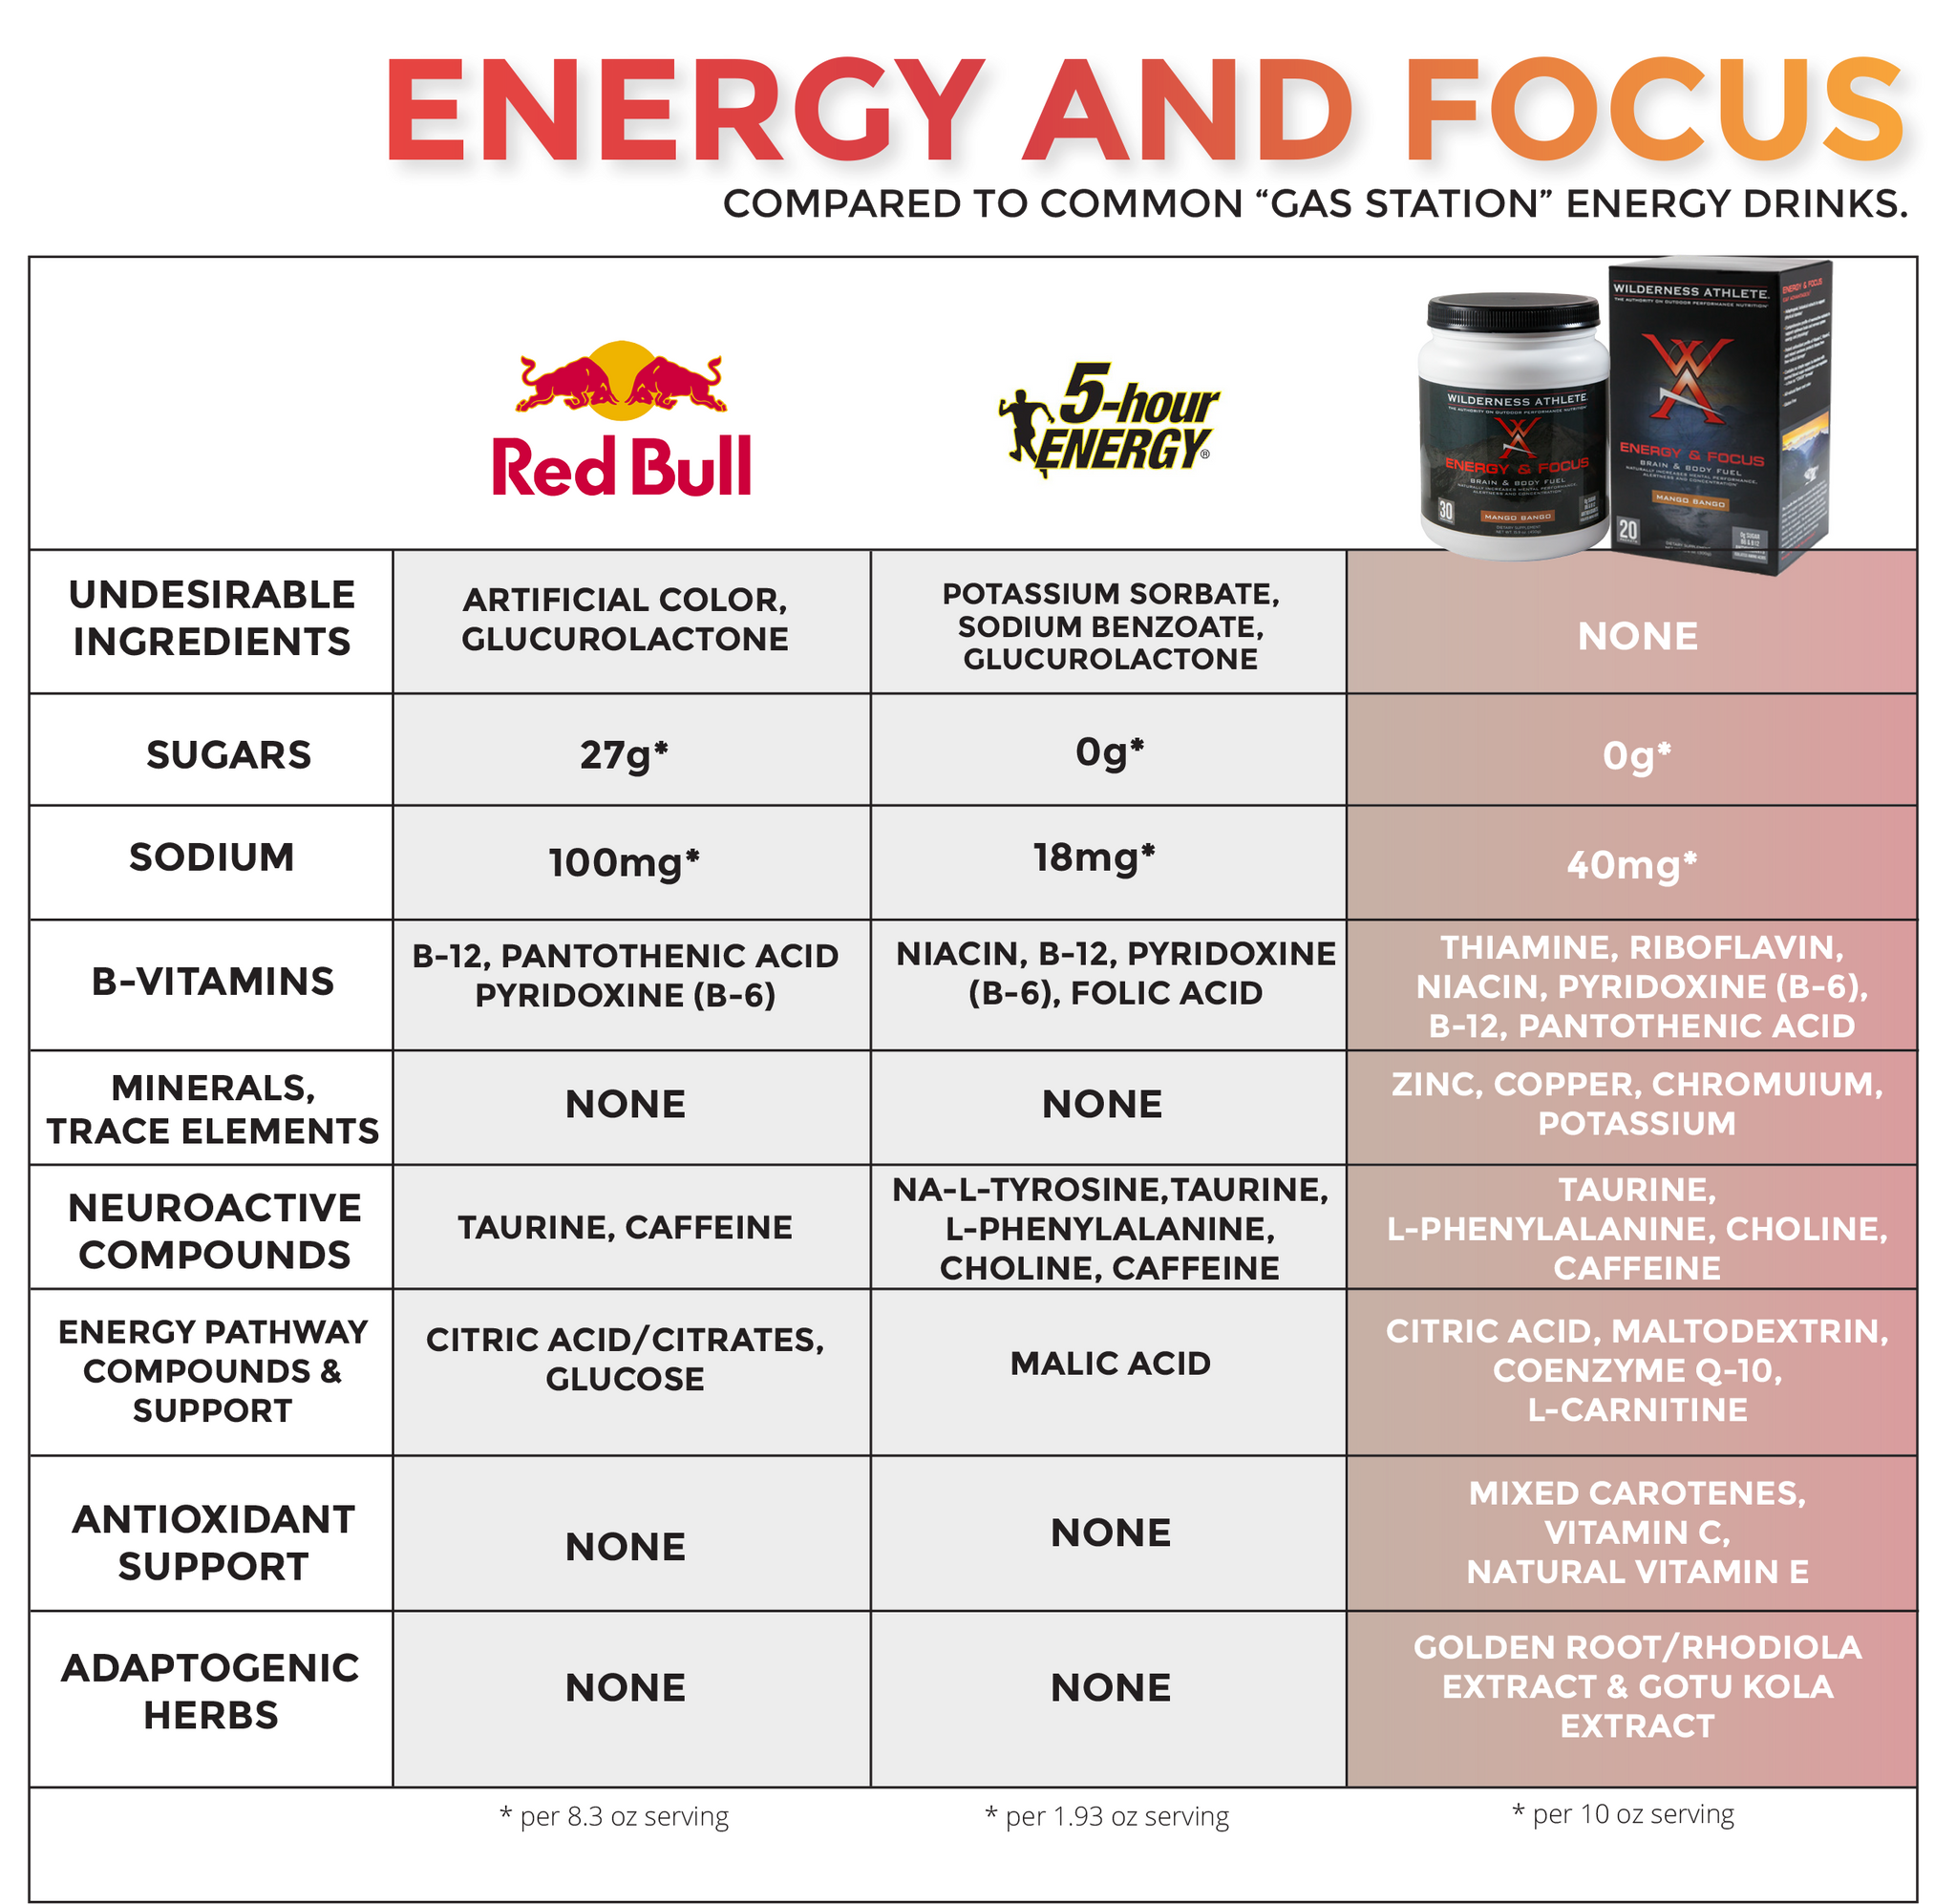 Red Bull and 5-Hour Energy Comparison